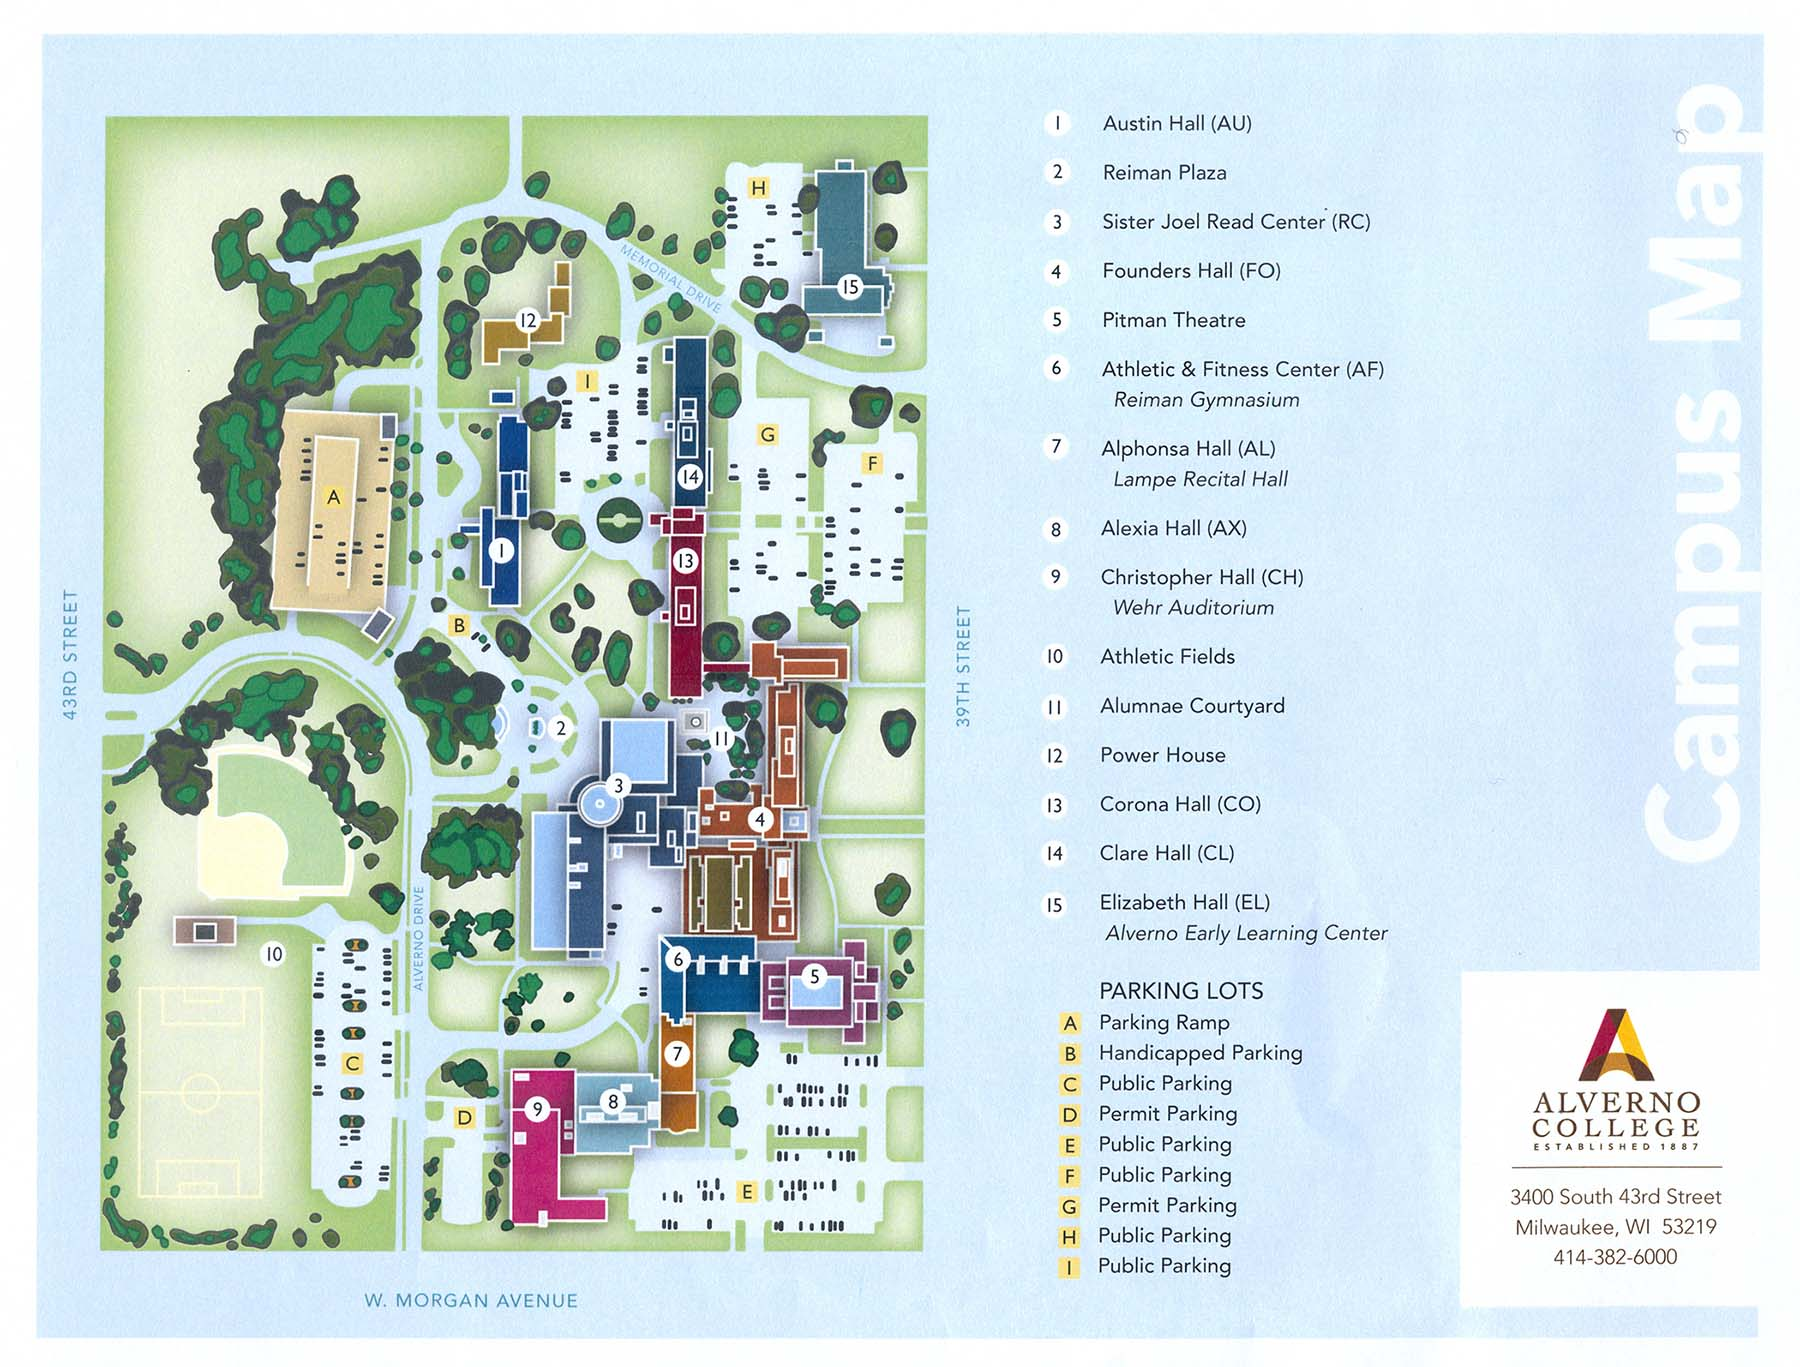 This is an Alverno College  campus map from 2019.